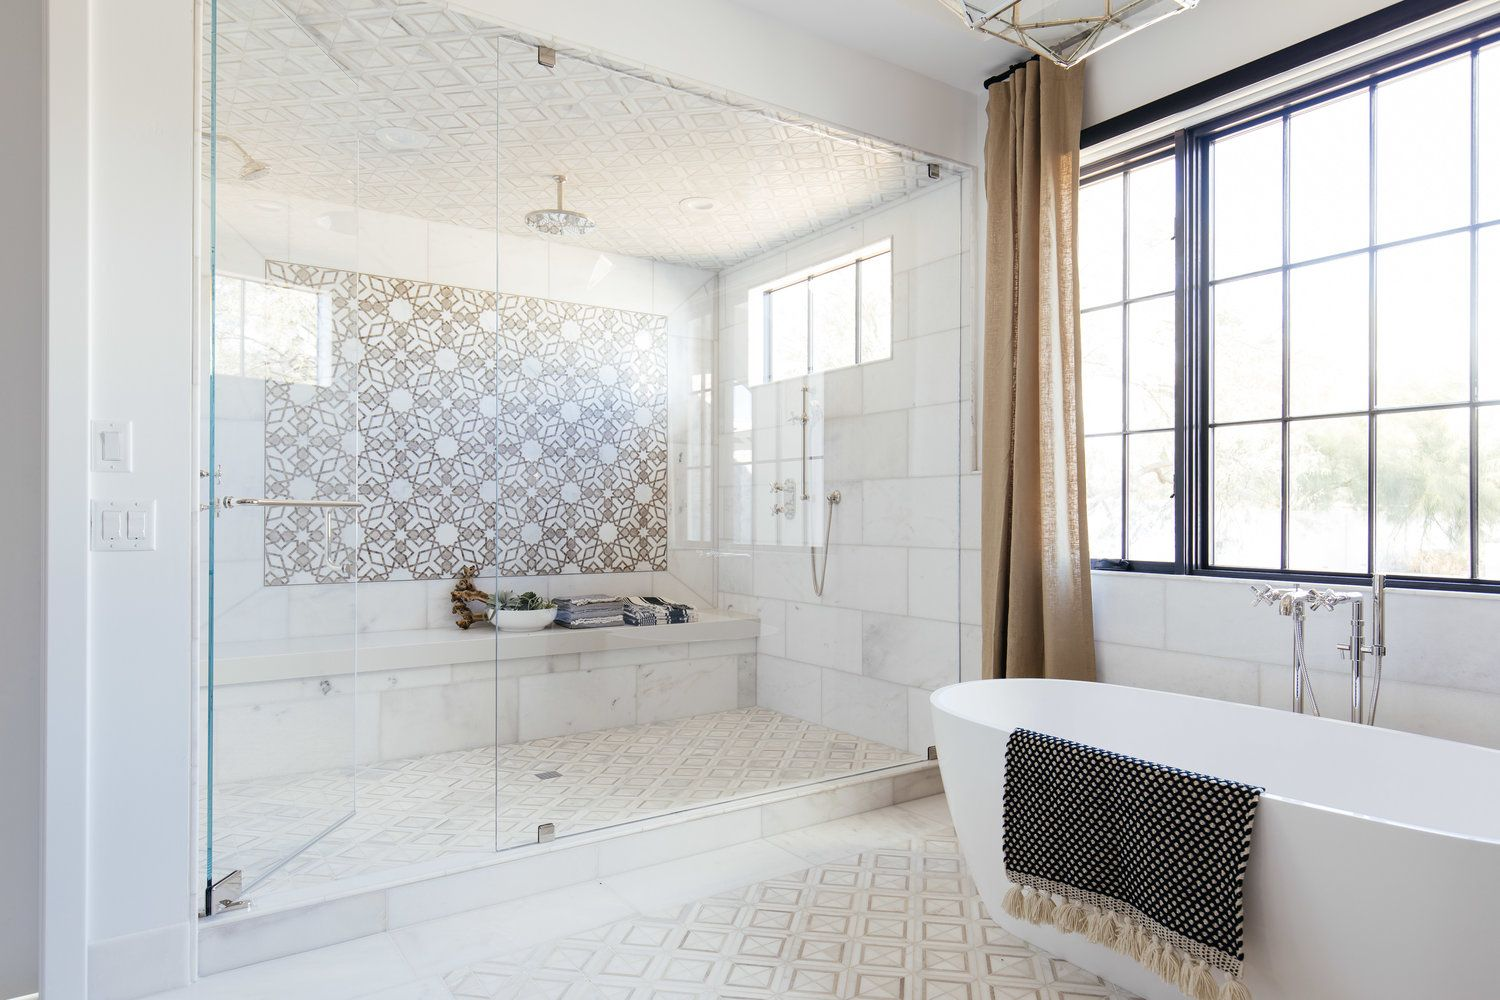 Jaw Dropping Master Bathroom Design By The Lifestyled Co Extra Large Shower With Bench Seat An With Images Timeless Bathroom Master Bathroom Design Bathroom Tile Designs